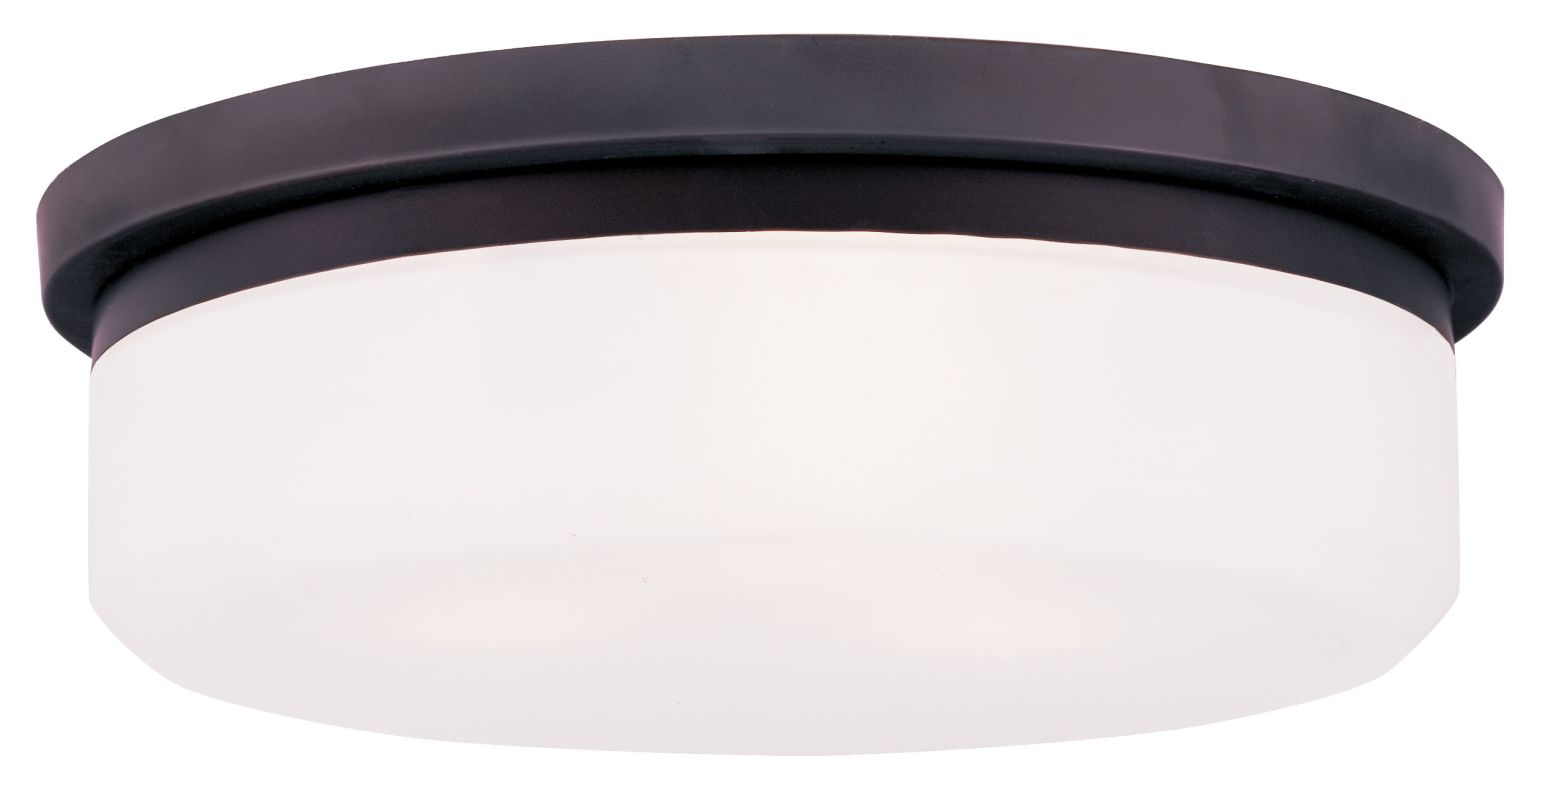 Livex Lighting 7393 15.5 Inch Wide Flush Mount Ceiling Fixture / Wall